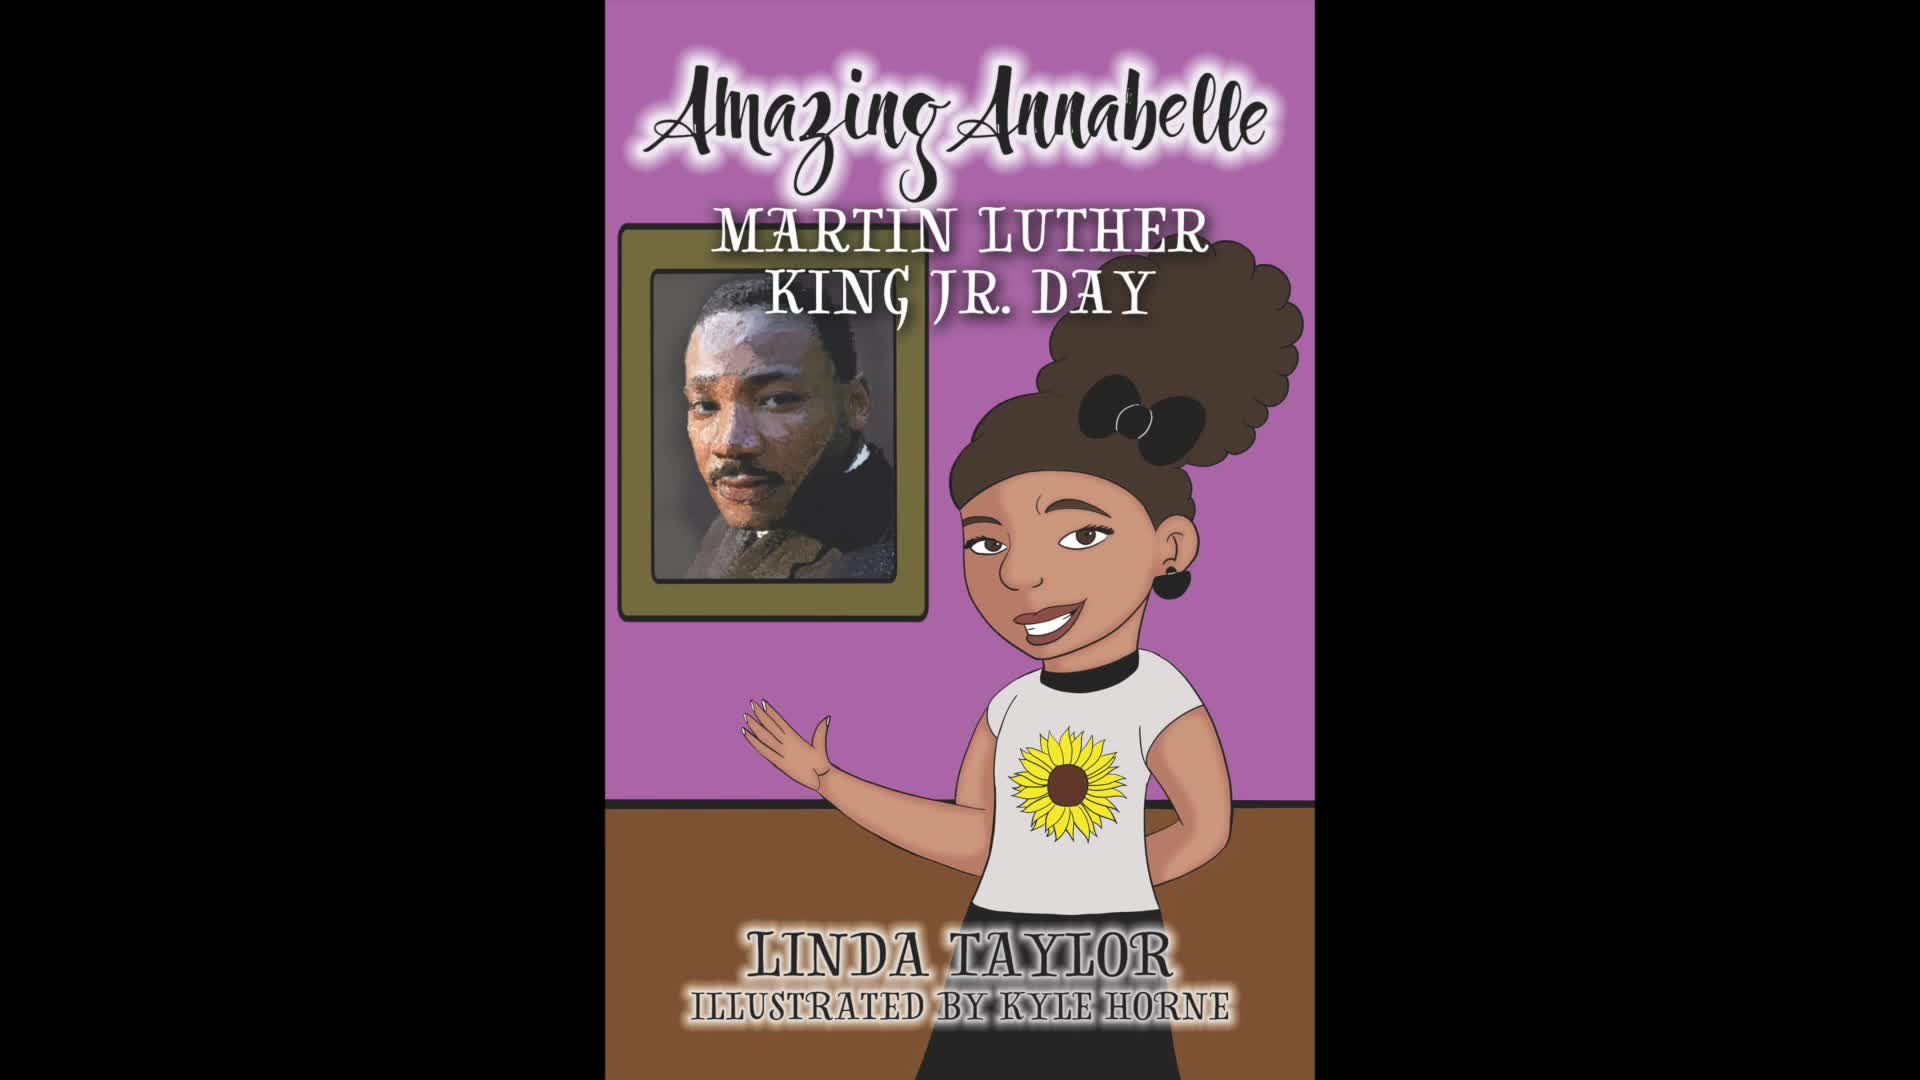 Amazing Annabelle Martin Luther King Jr Day Chapter 2